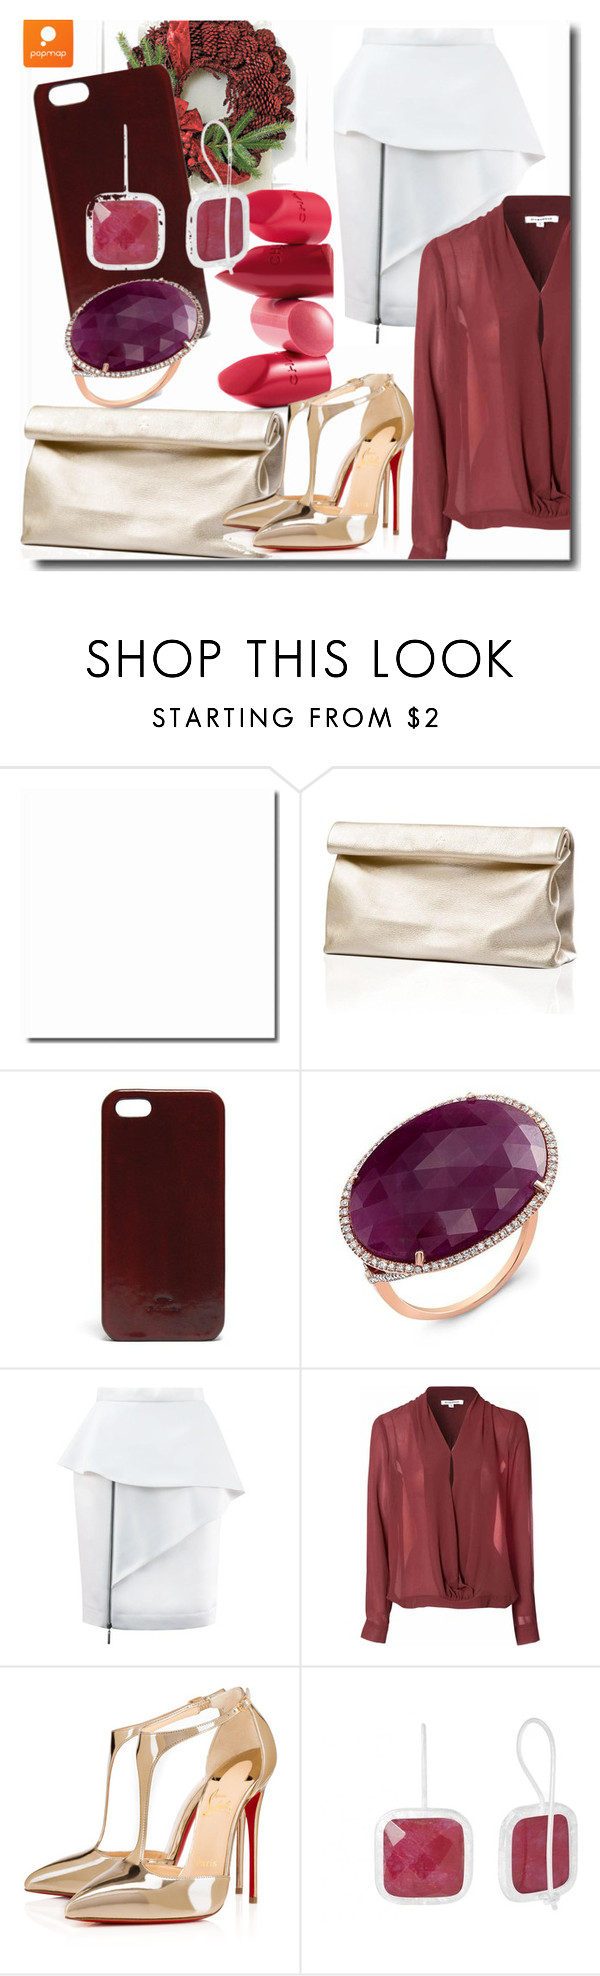 """""""Popmap 34"""" by goldenhour ❤ liked on Polyvore featuring Rossetto, Marie Turnor, Glamorous and Christian Louboutin"""